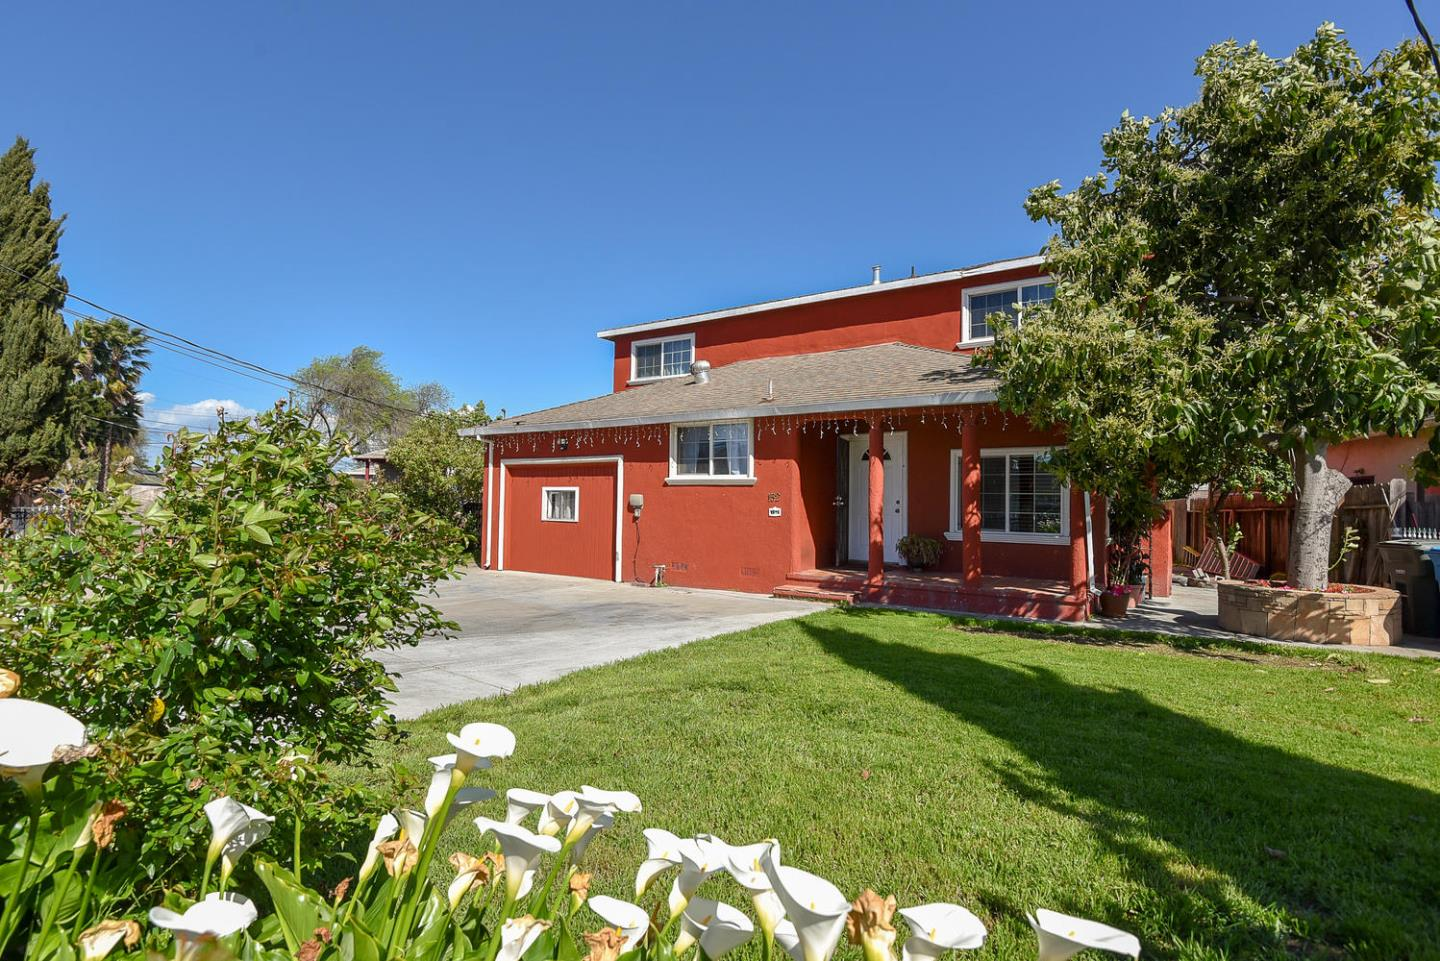 152 ASTER WAY, EAST PALO ALTO, CA 94303